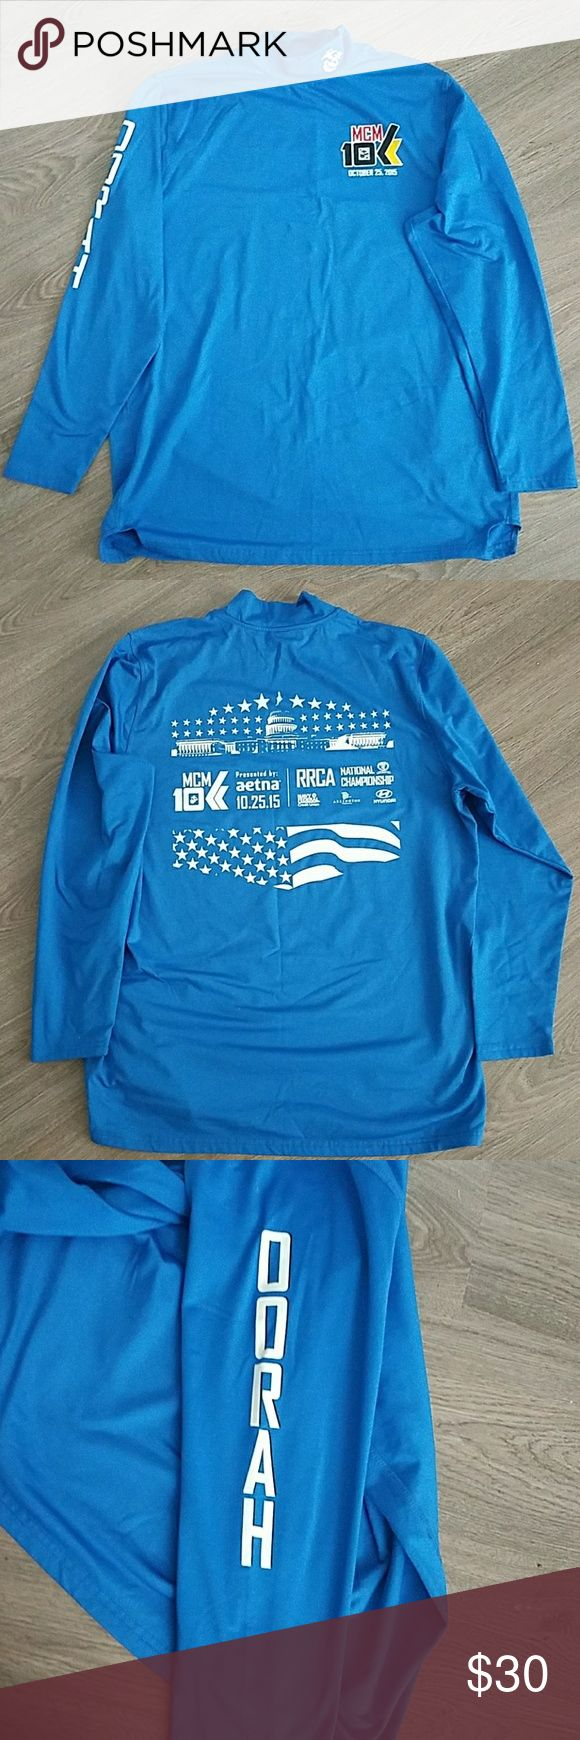 2015 MCM Shirts 2015 Marine Corps Marathon shirt. (Authentic) Only available yearly the day of the run in DC These shirts keep you cool & are warm! Unisex No tags are ever put on them. Shirts